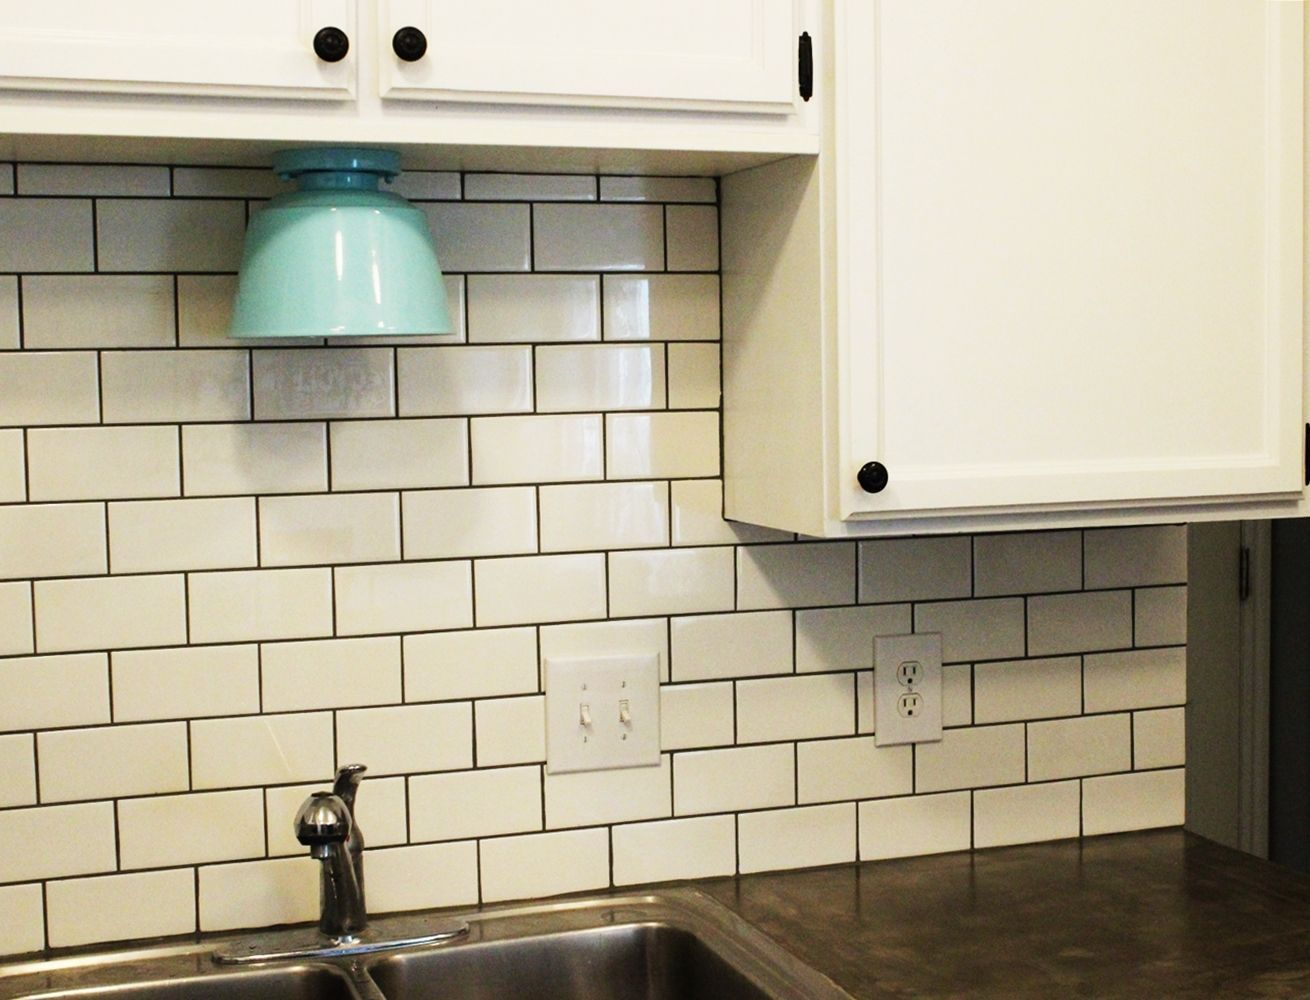 Beautiful kitchen backsplash with tiles and turquoise lighting fixture